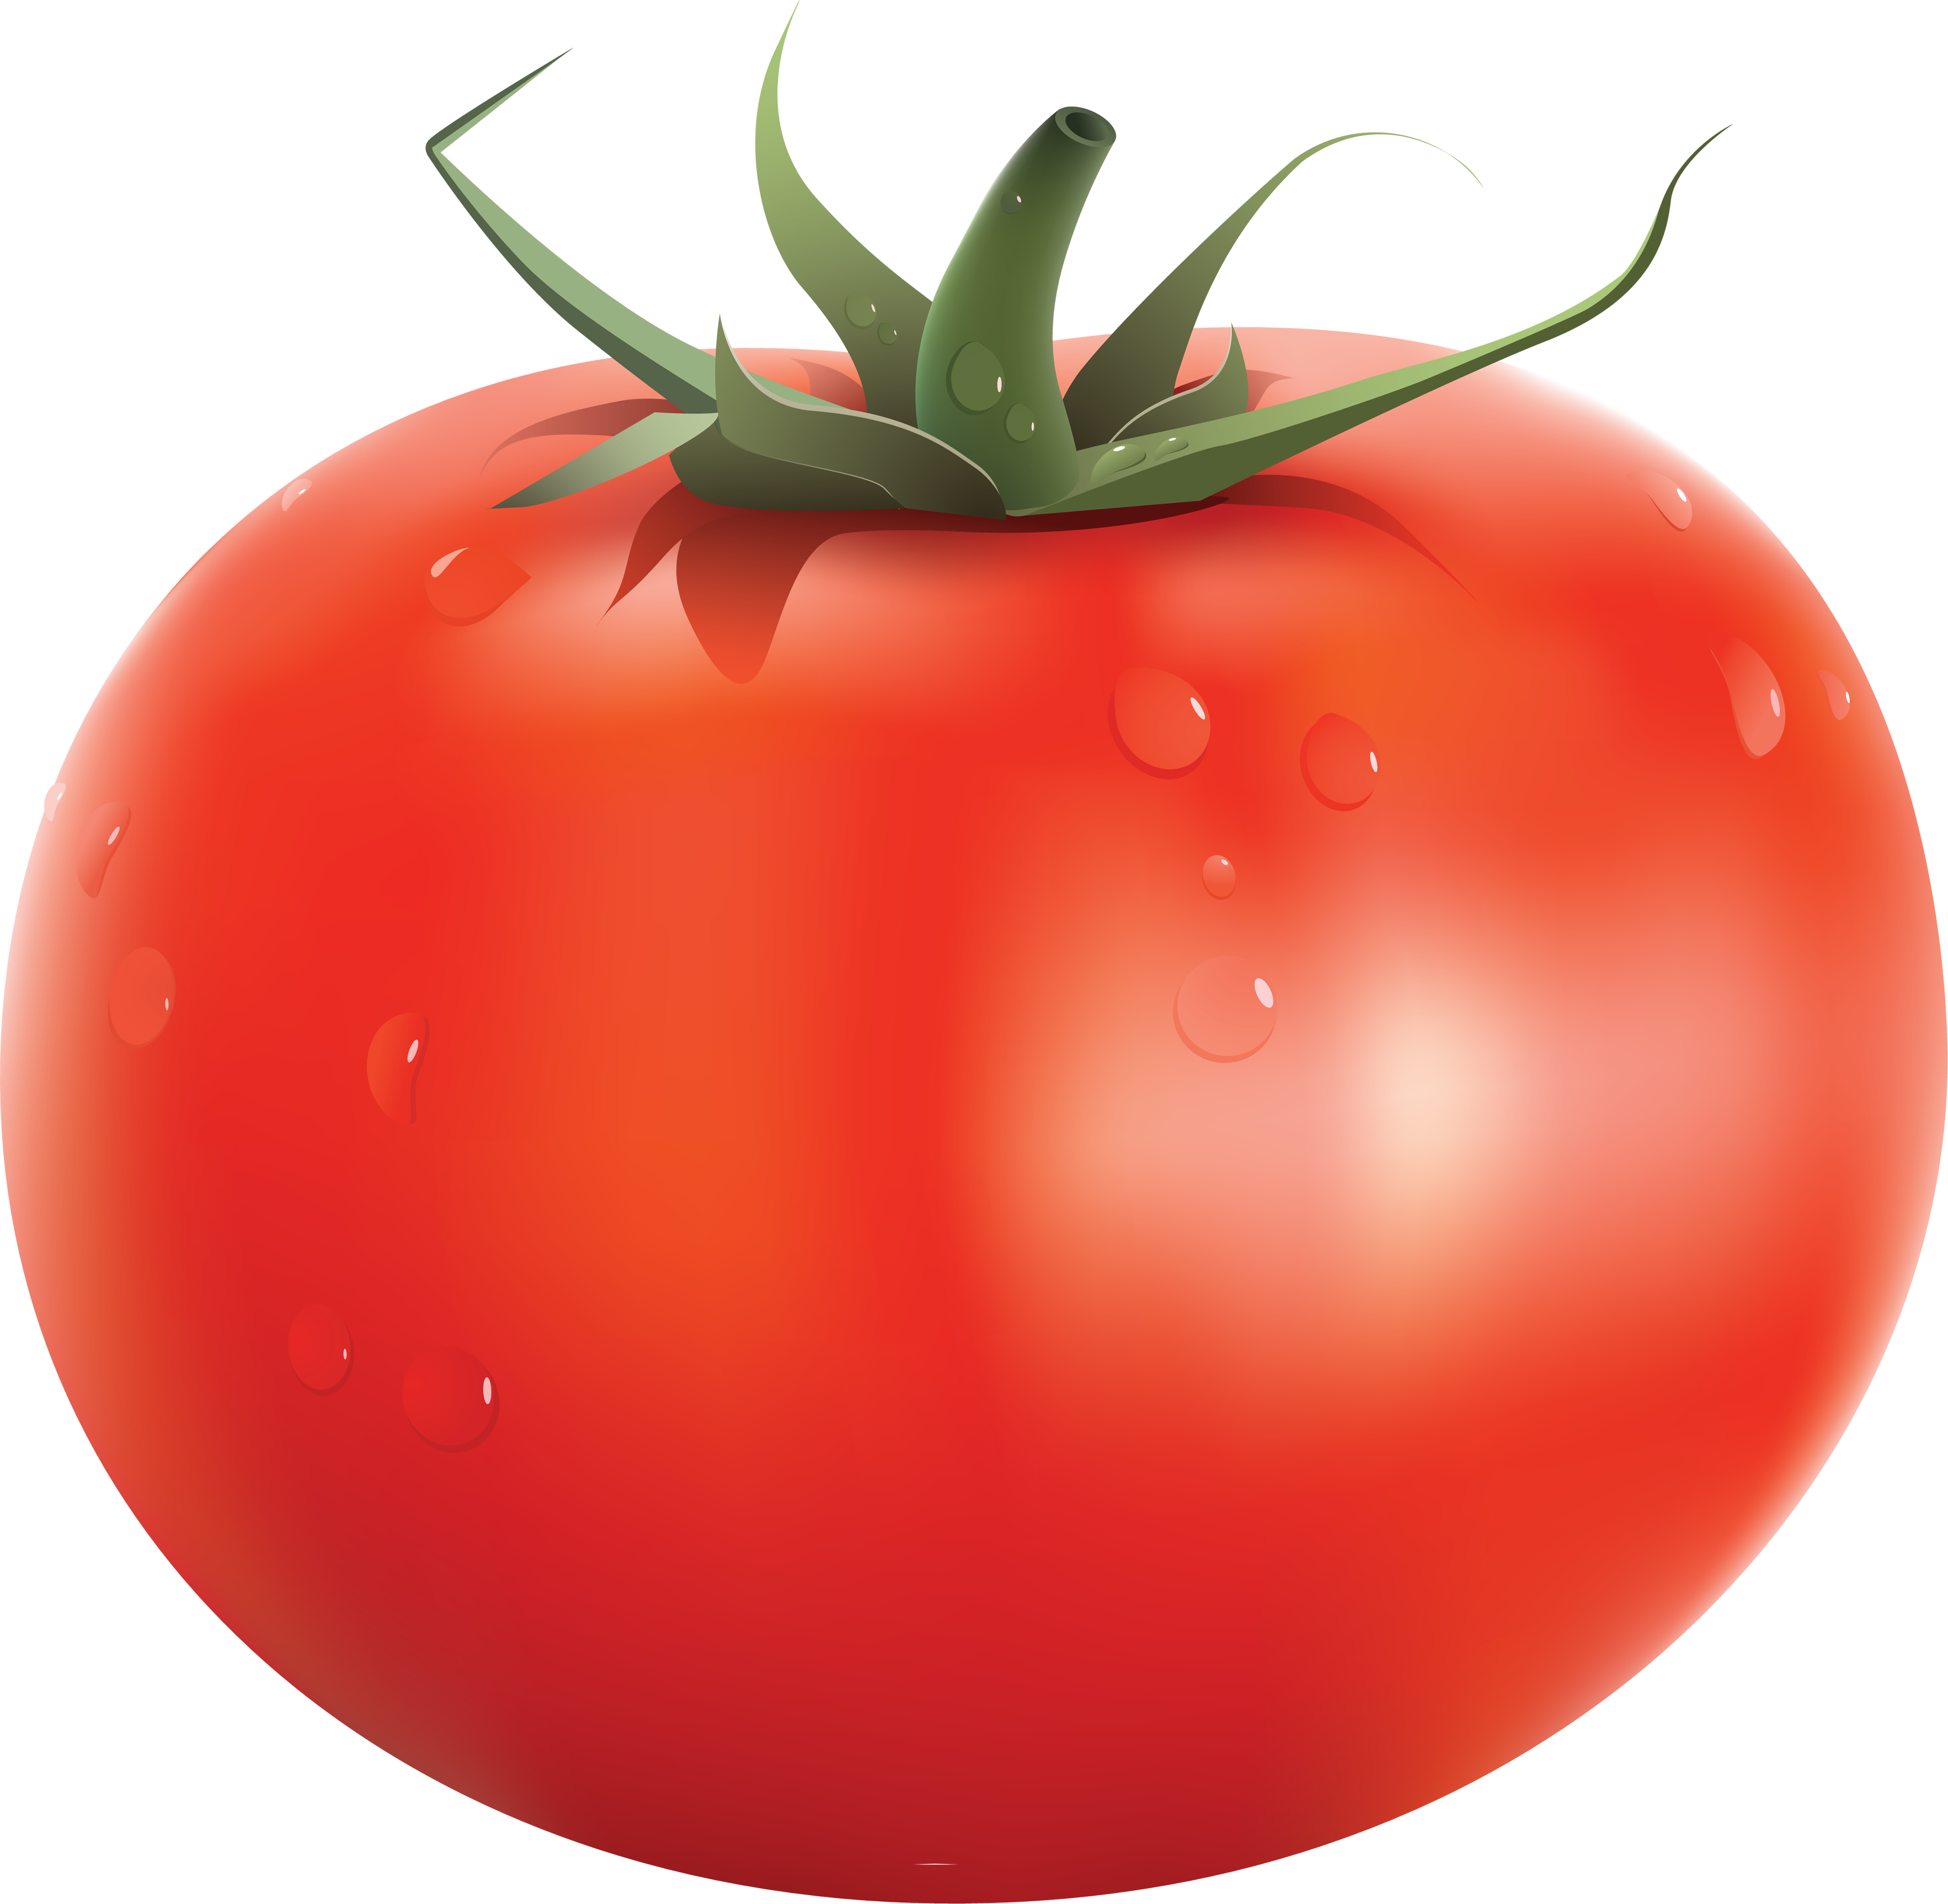 Tomato png images transparent. Tomatoes clipart anaar